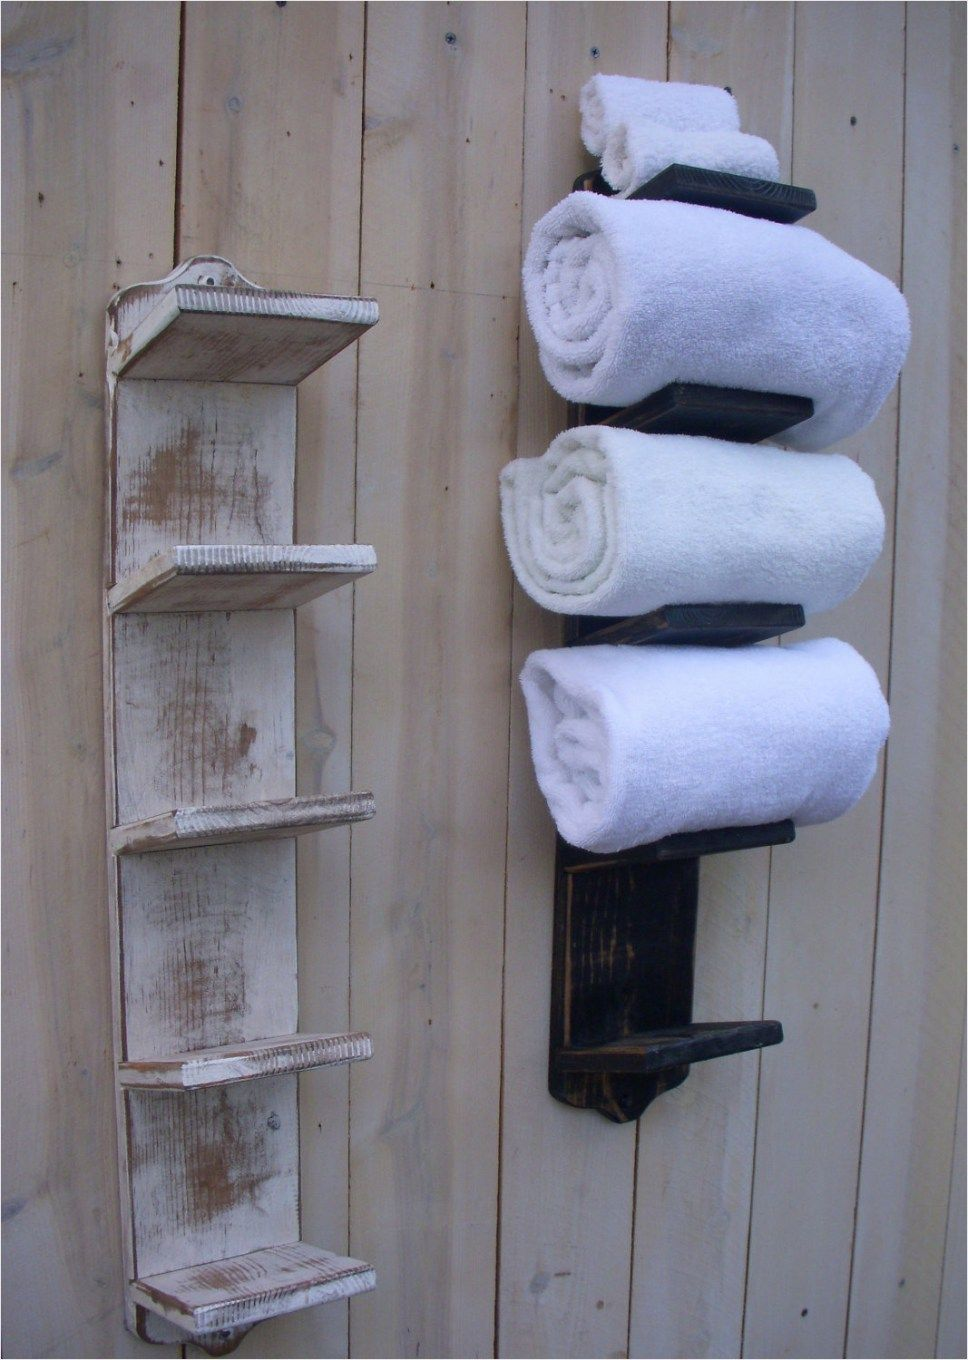 40 Creative Ideas White Rustic Bathroom Shelves That Will Make Your Bathroom Stunning Viral Decora In 2020 Wall Towel Racks Bathroom Towel Storage Bath Towel Storage